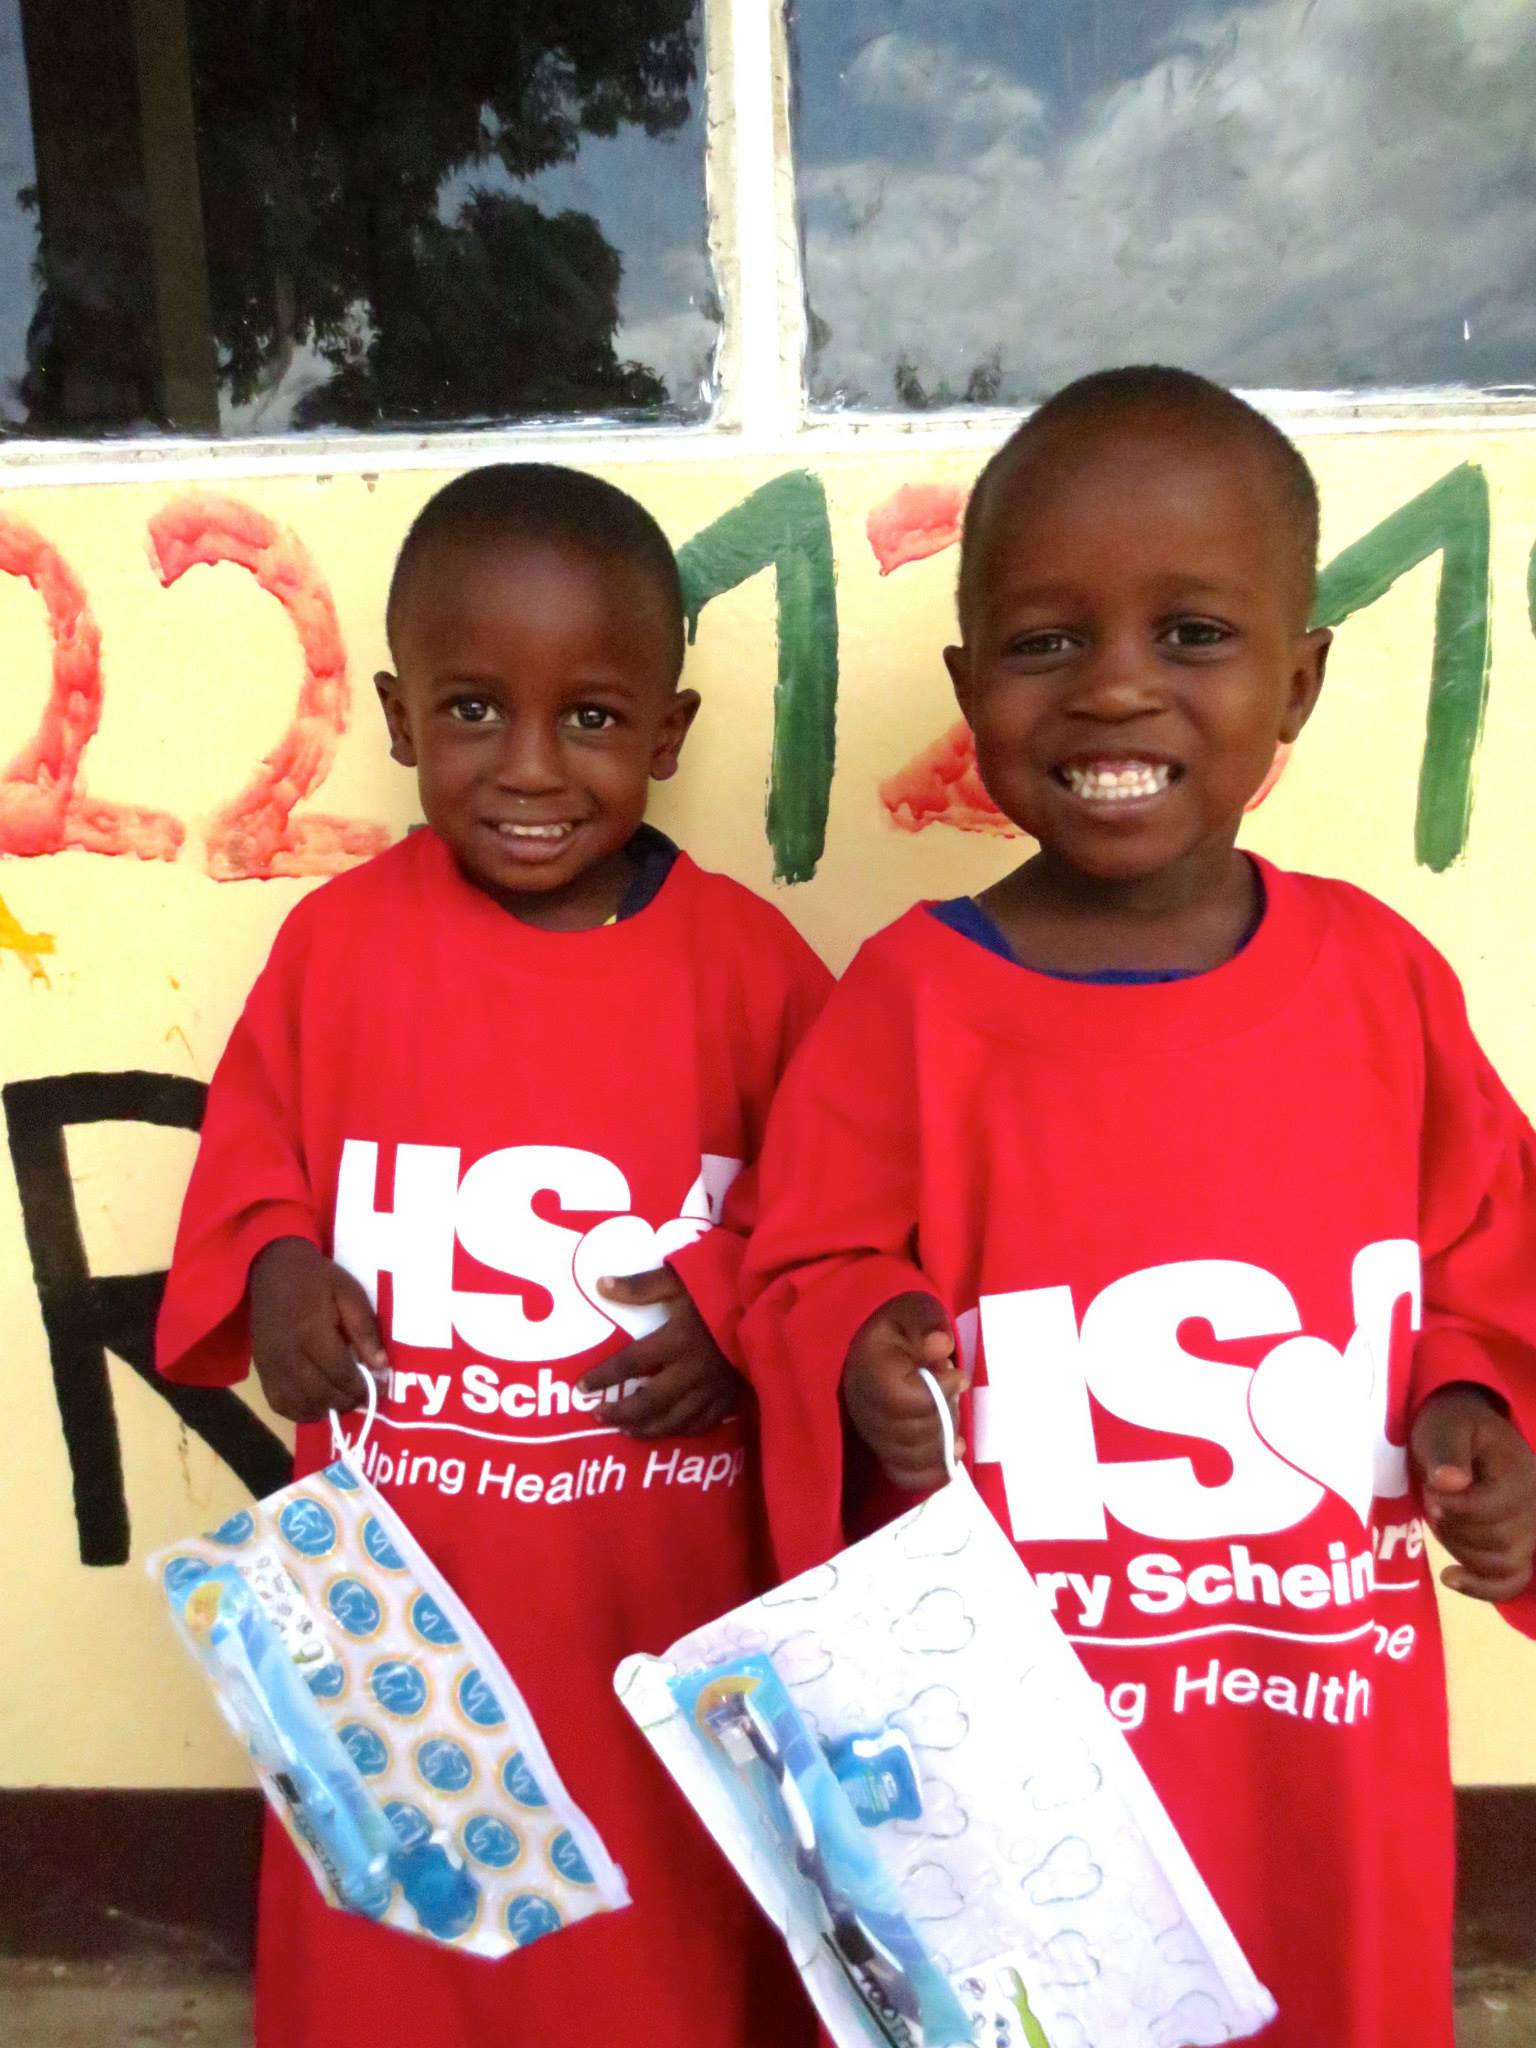 A big THANK YOU to the Henry Schein Cares Foundation for donating supplies.